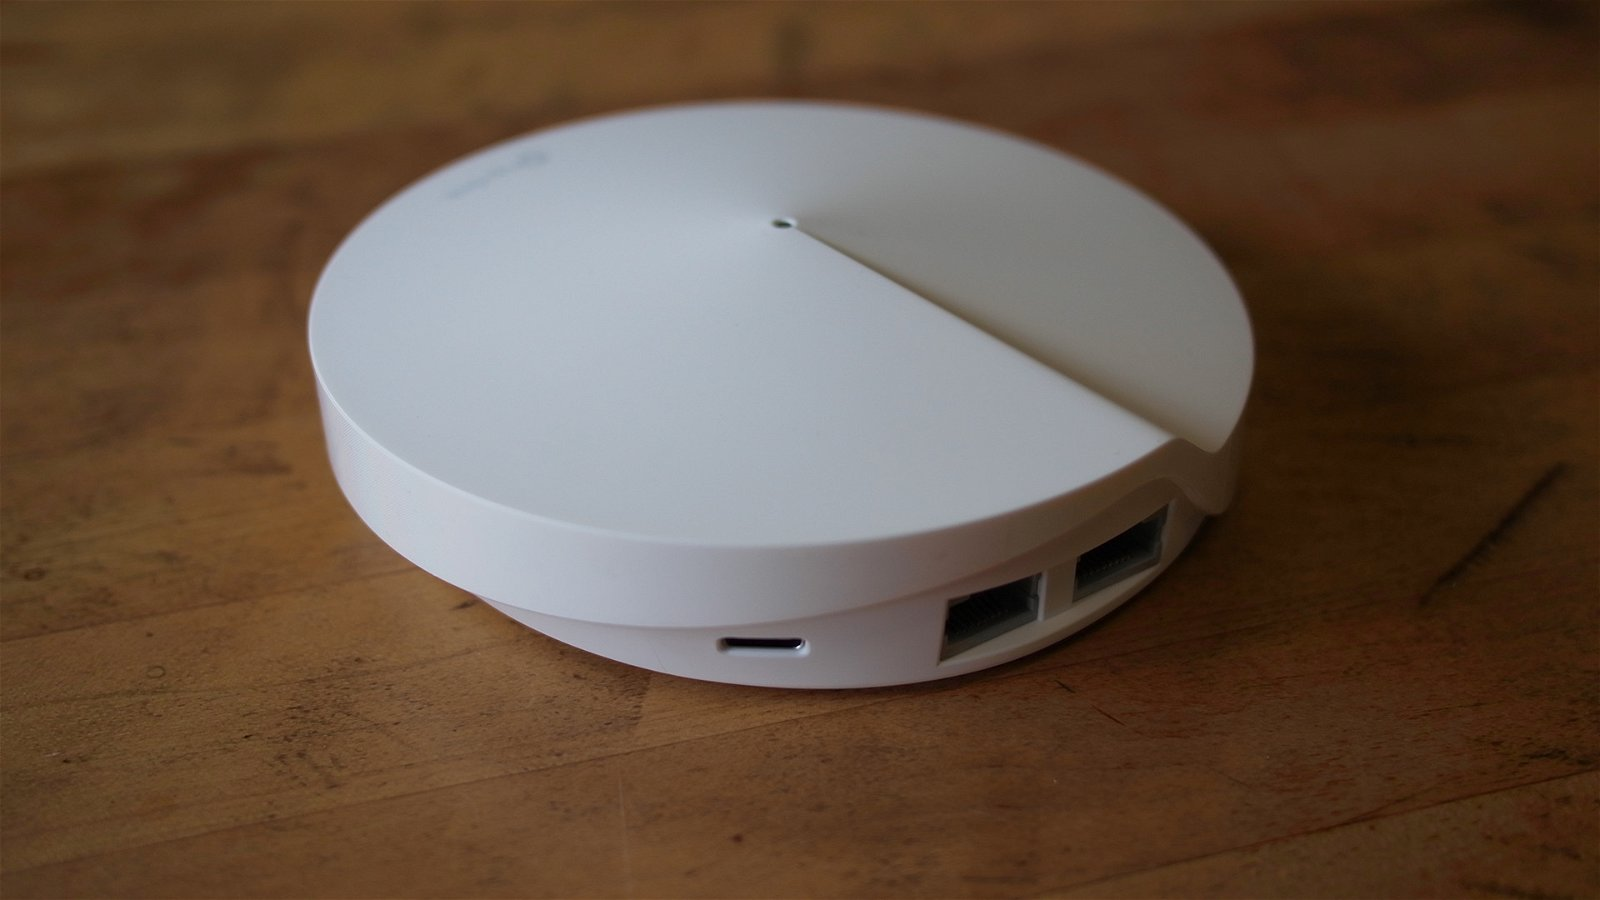 Tp Link Deco M5 Router (Hardware) Review